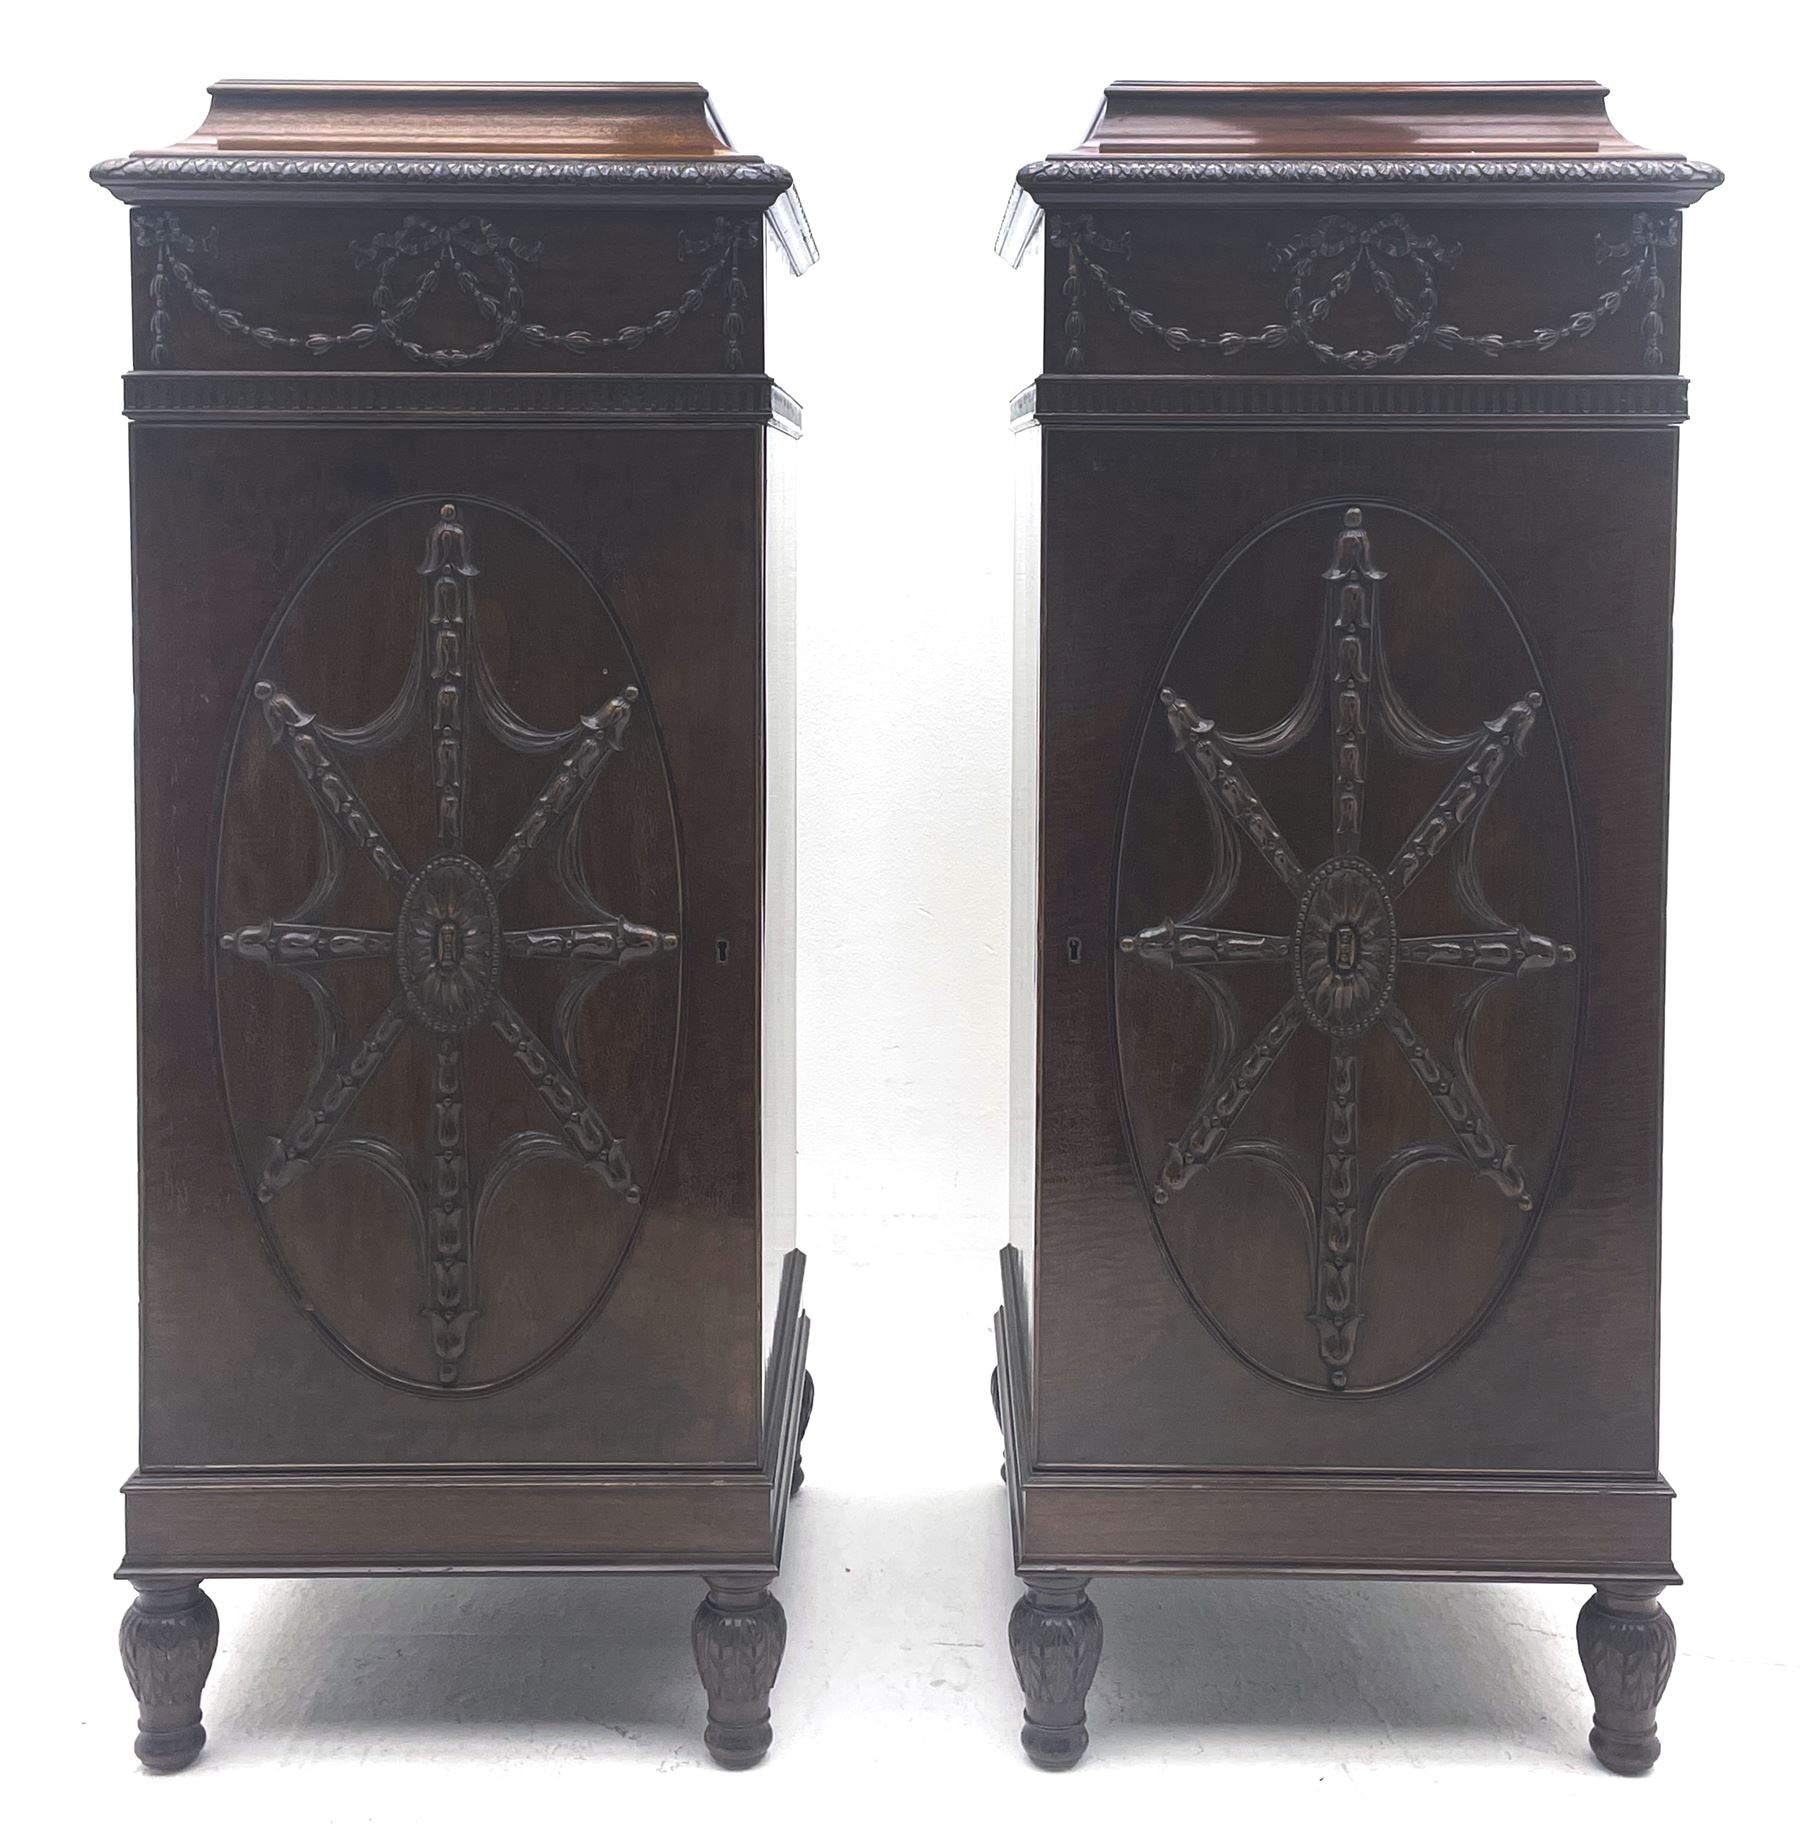 Pair early 20th century Hepplewhite style mahogany pedestal cabinets - Image 2 of 7